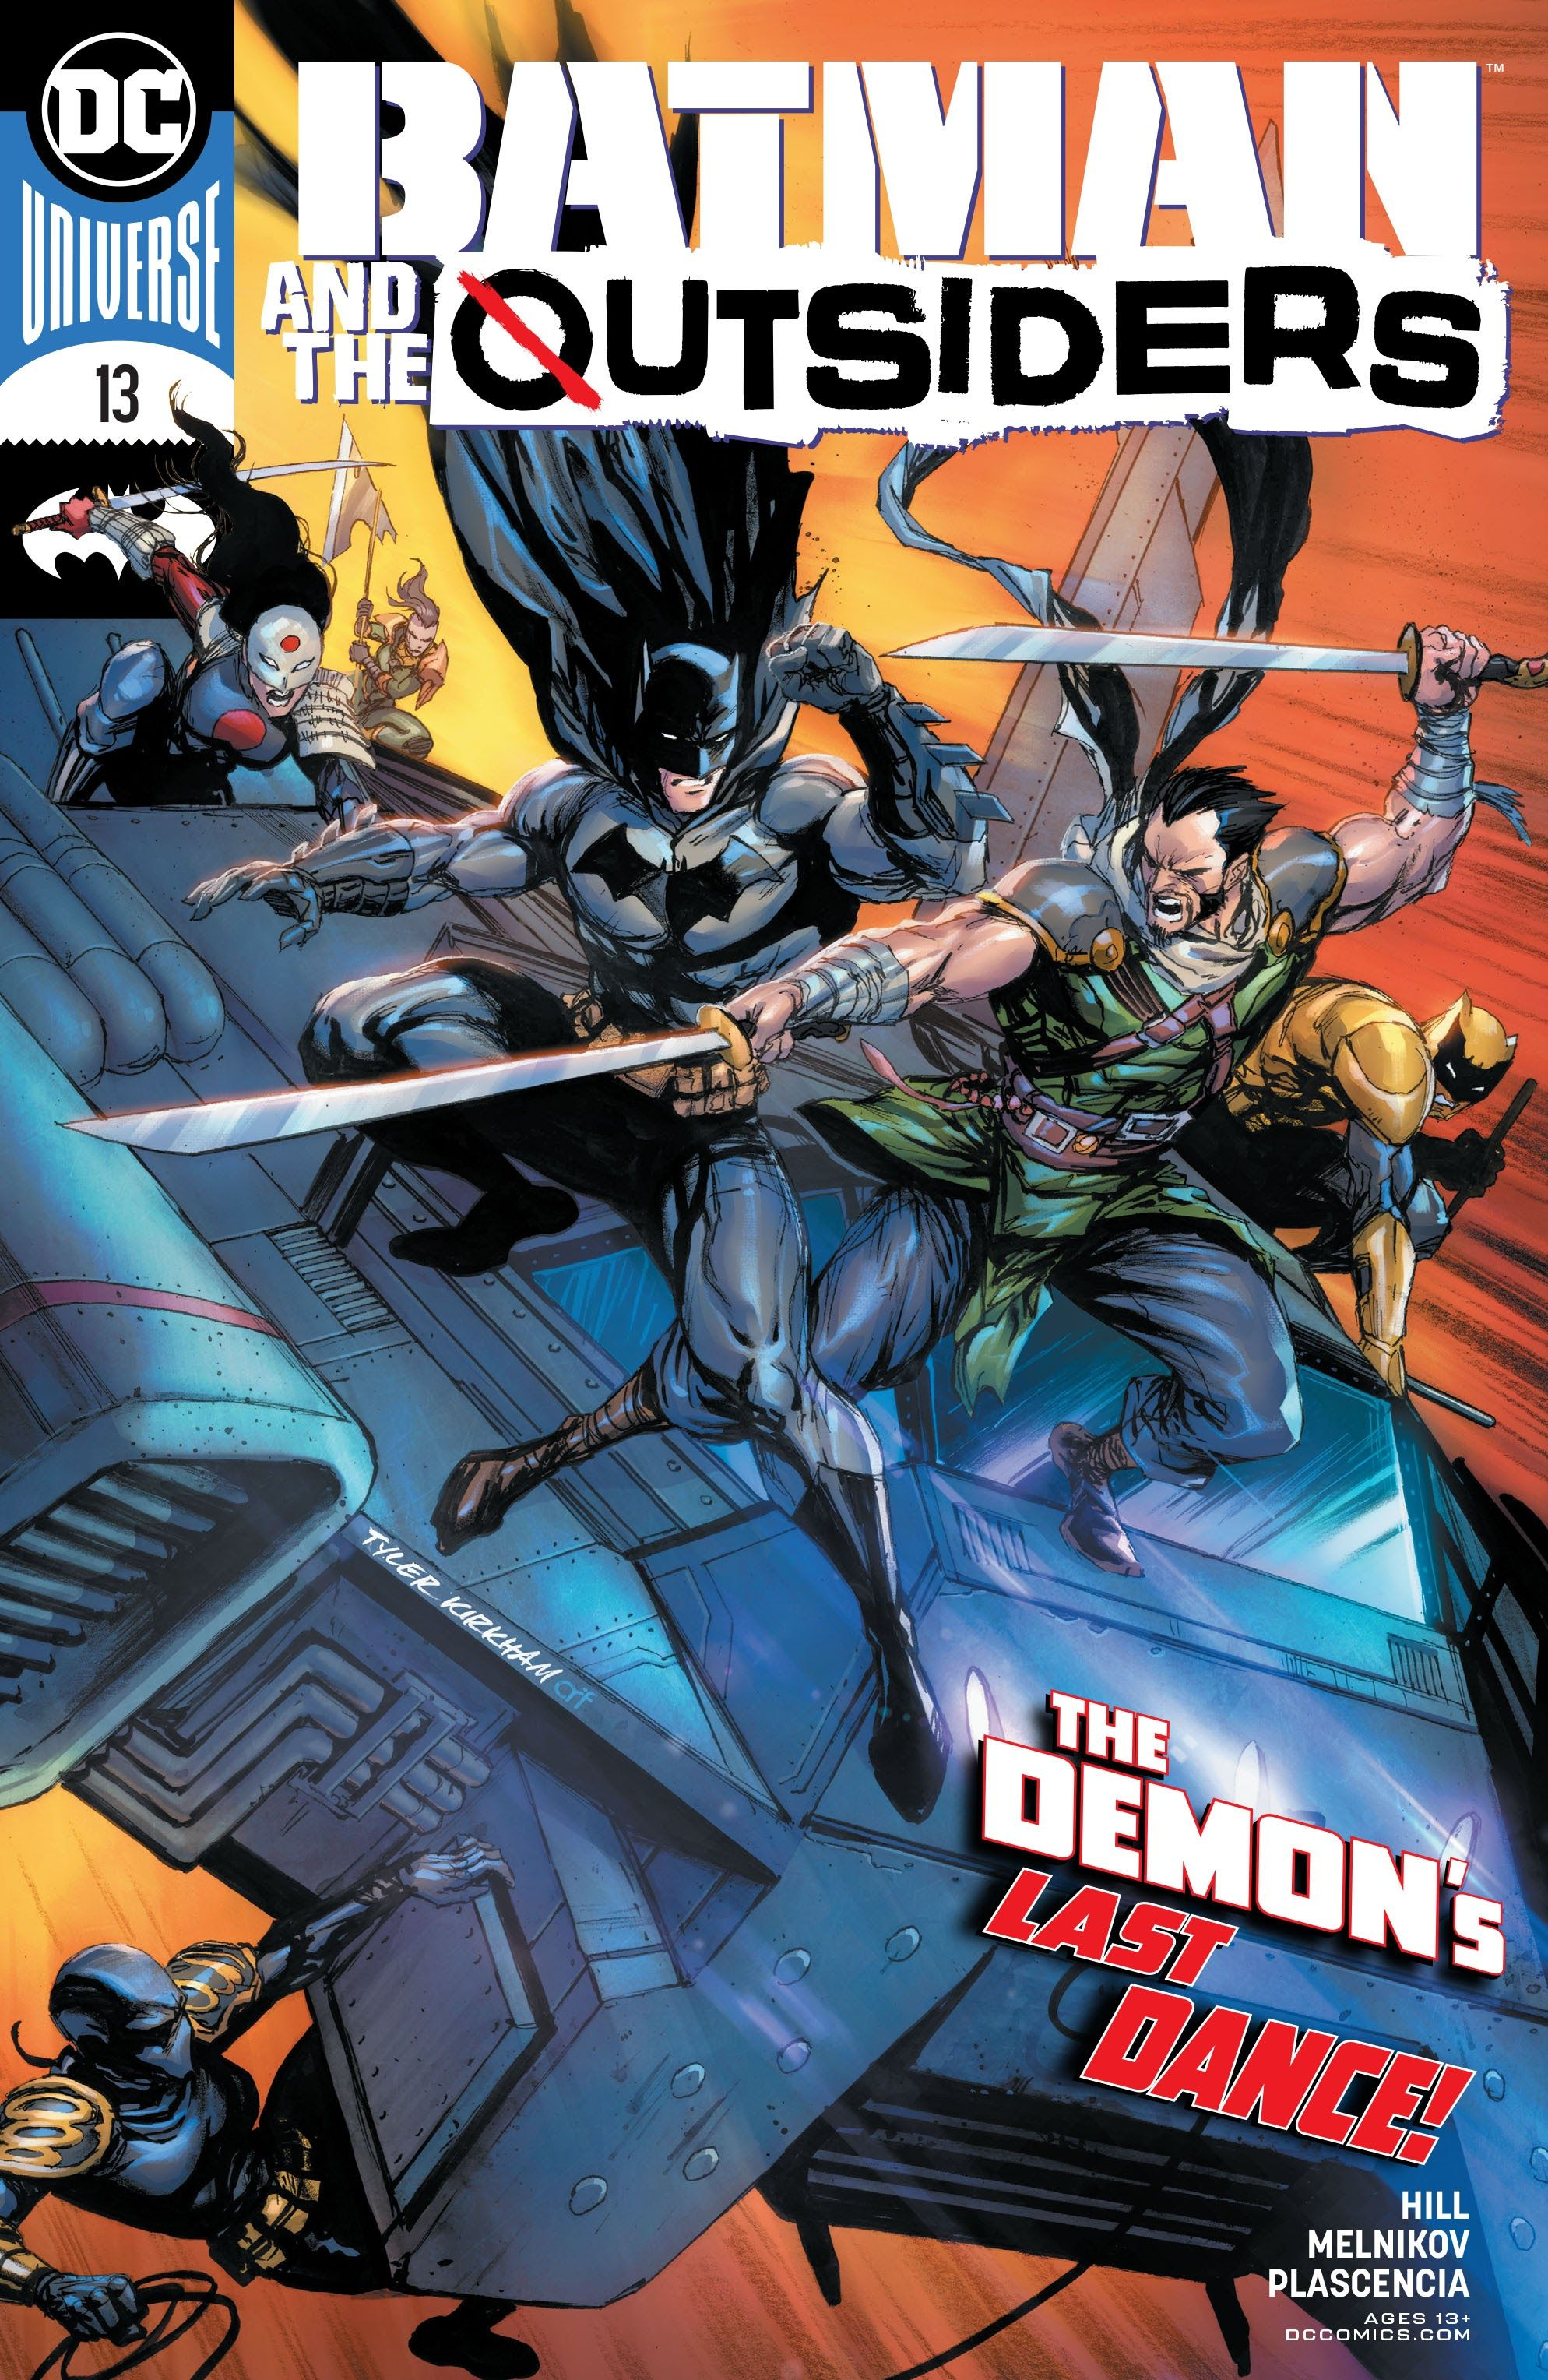 Read Batman And The Outsiders 2019 Issue 13 Online Comicpunch Net Comics Batman Comic Book Artists